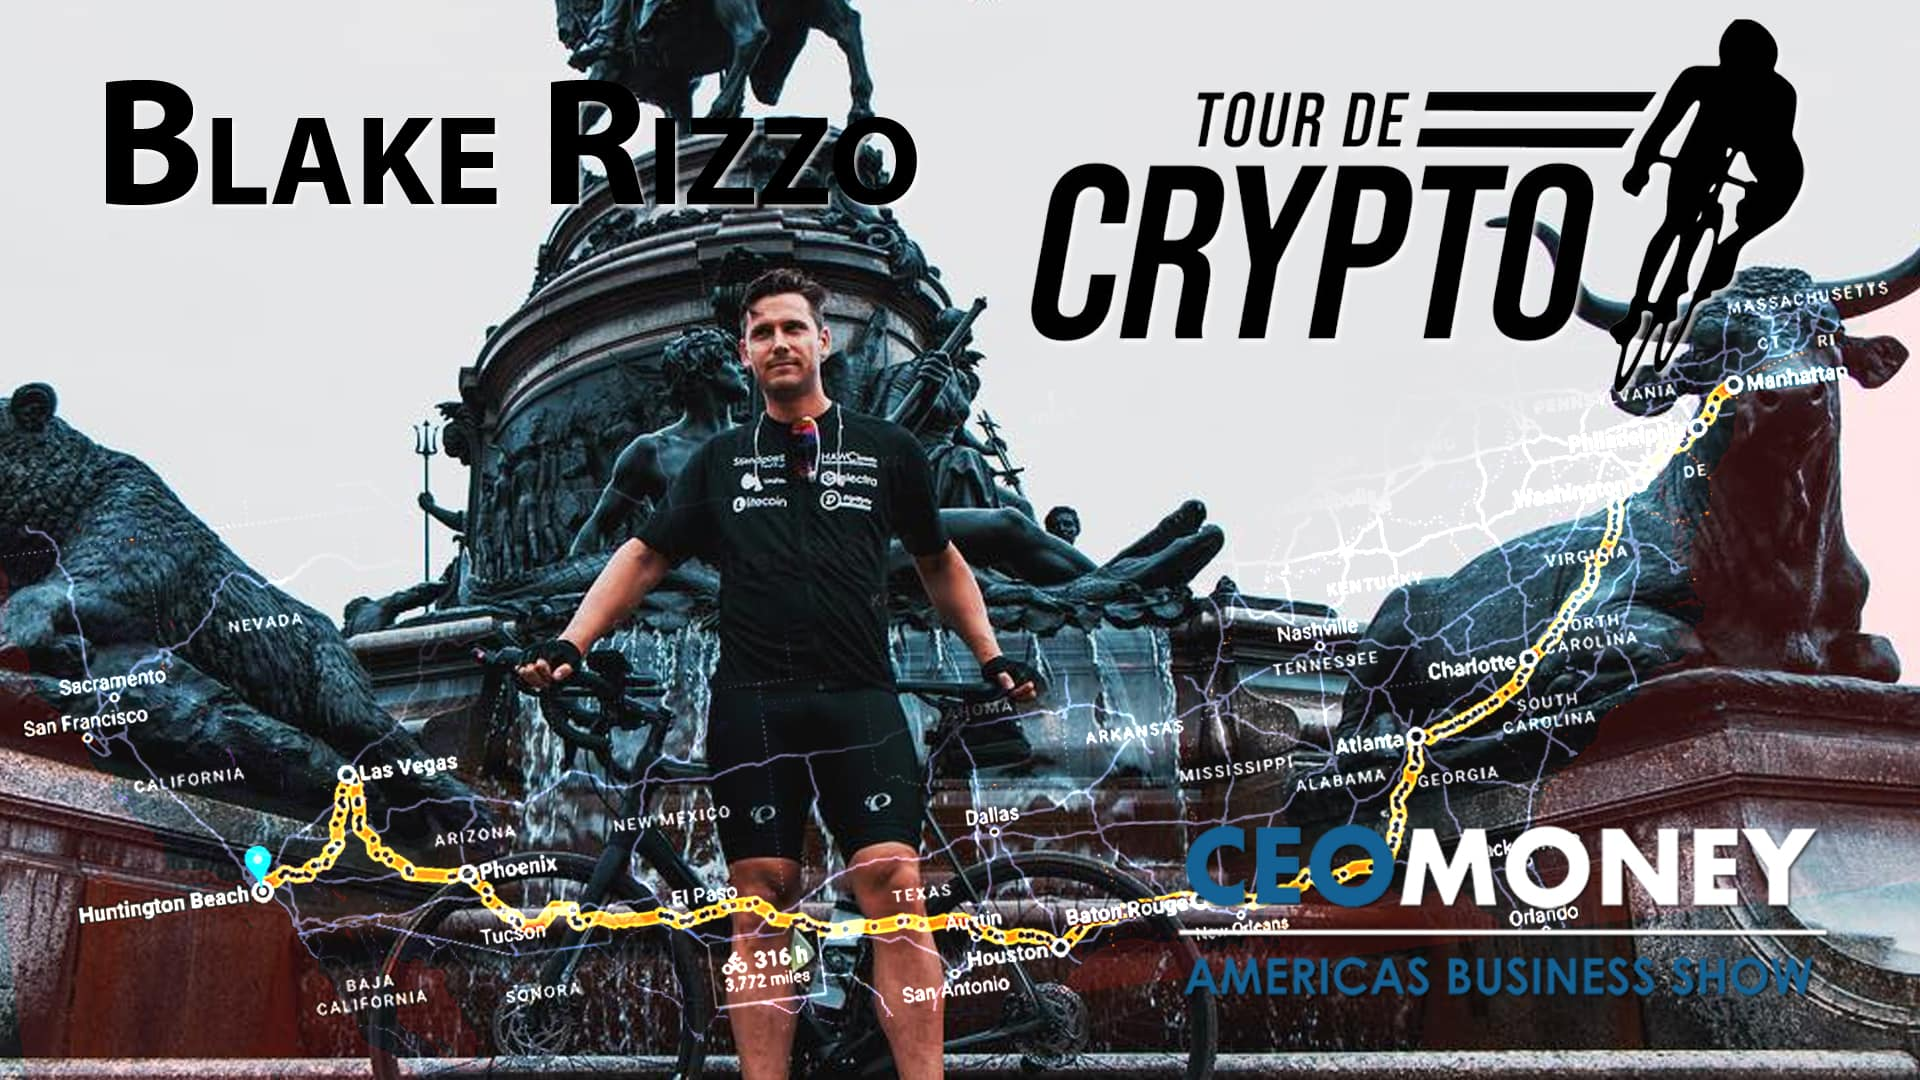 Blake Rizzo on how the Tour de Crypto is helping educate America and support a cause